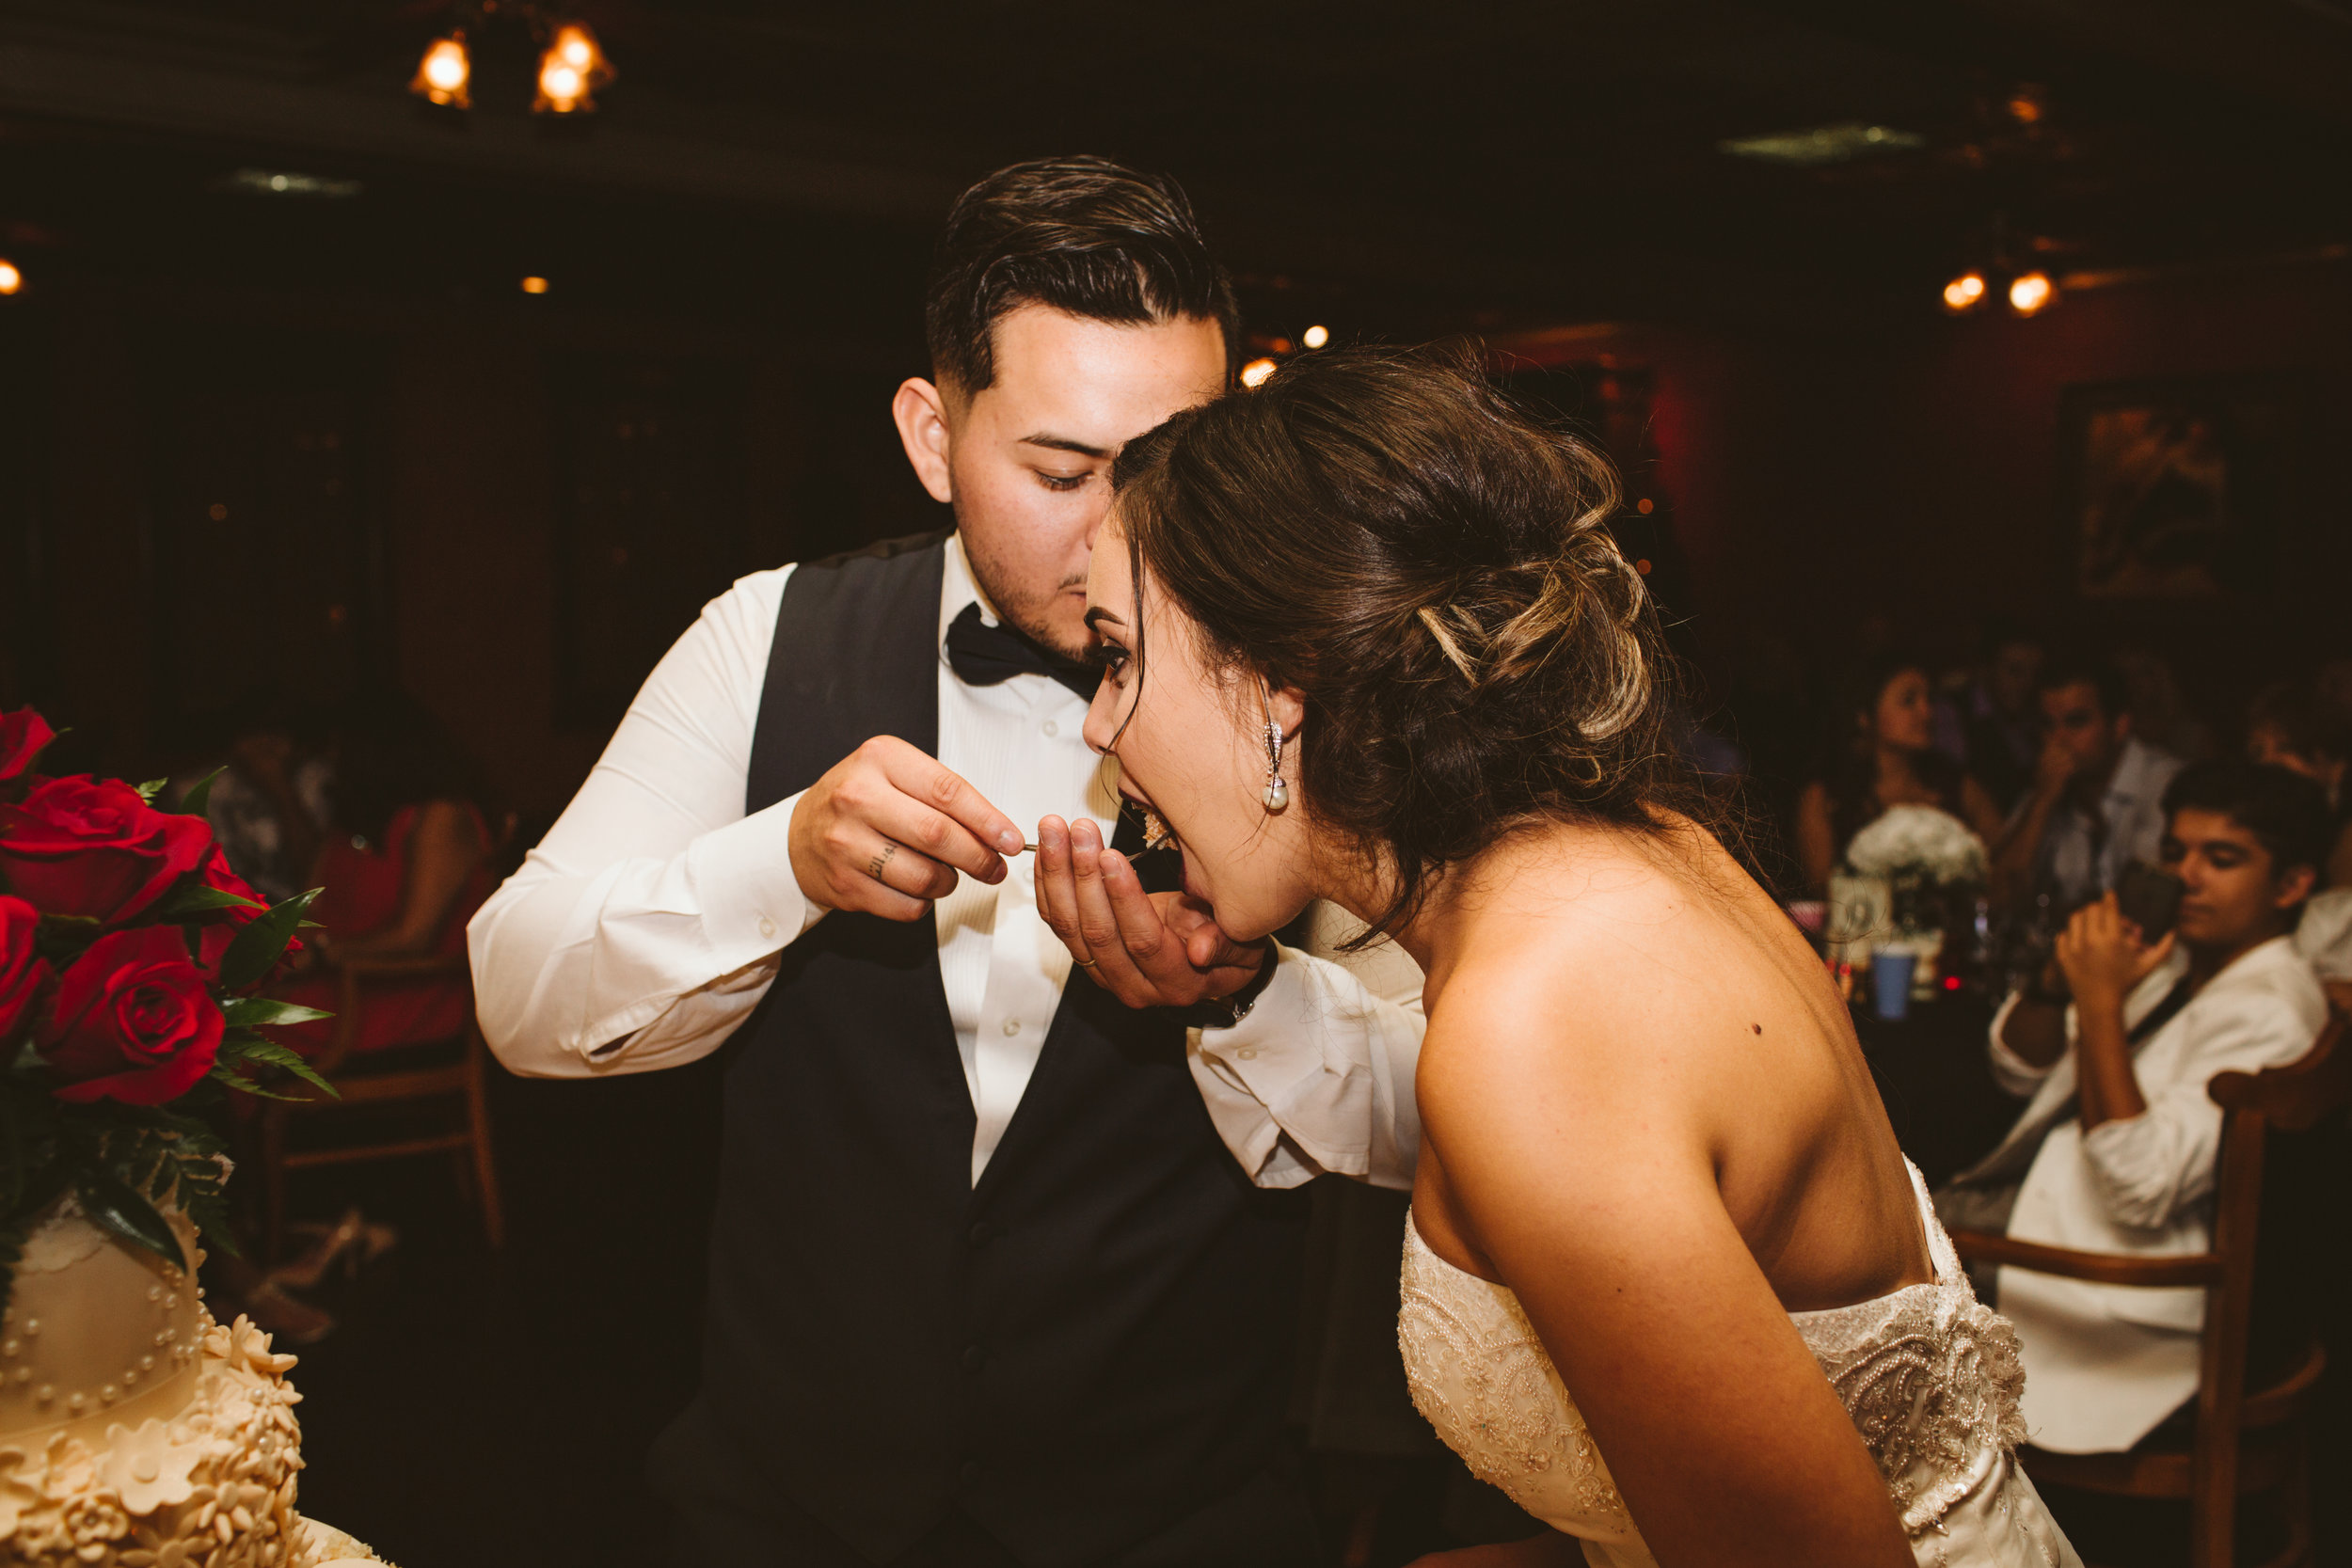 Ceviche Orlando | Wedding Photography | Vanessa Boy | vanessaboy.com |-642.com |final.jpg